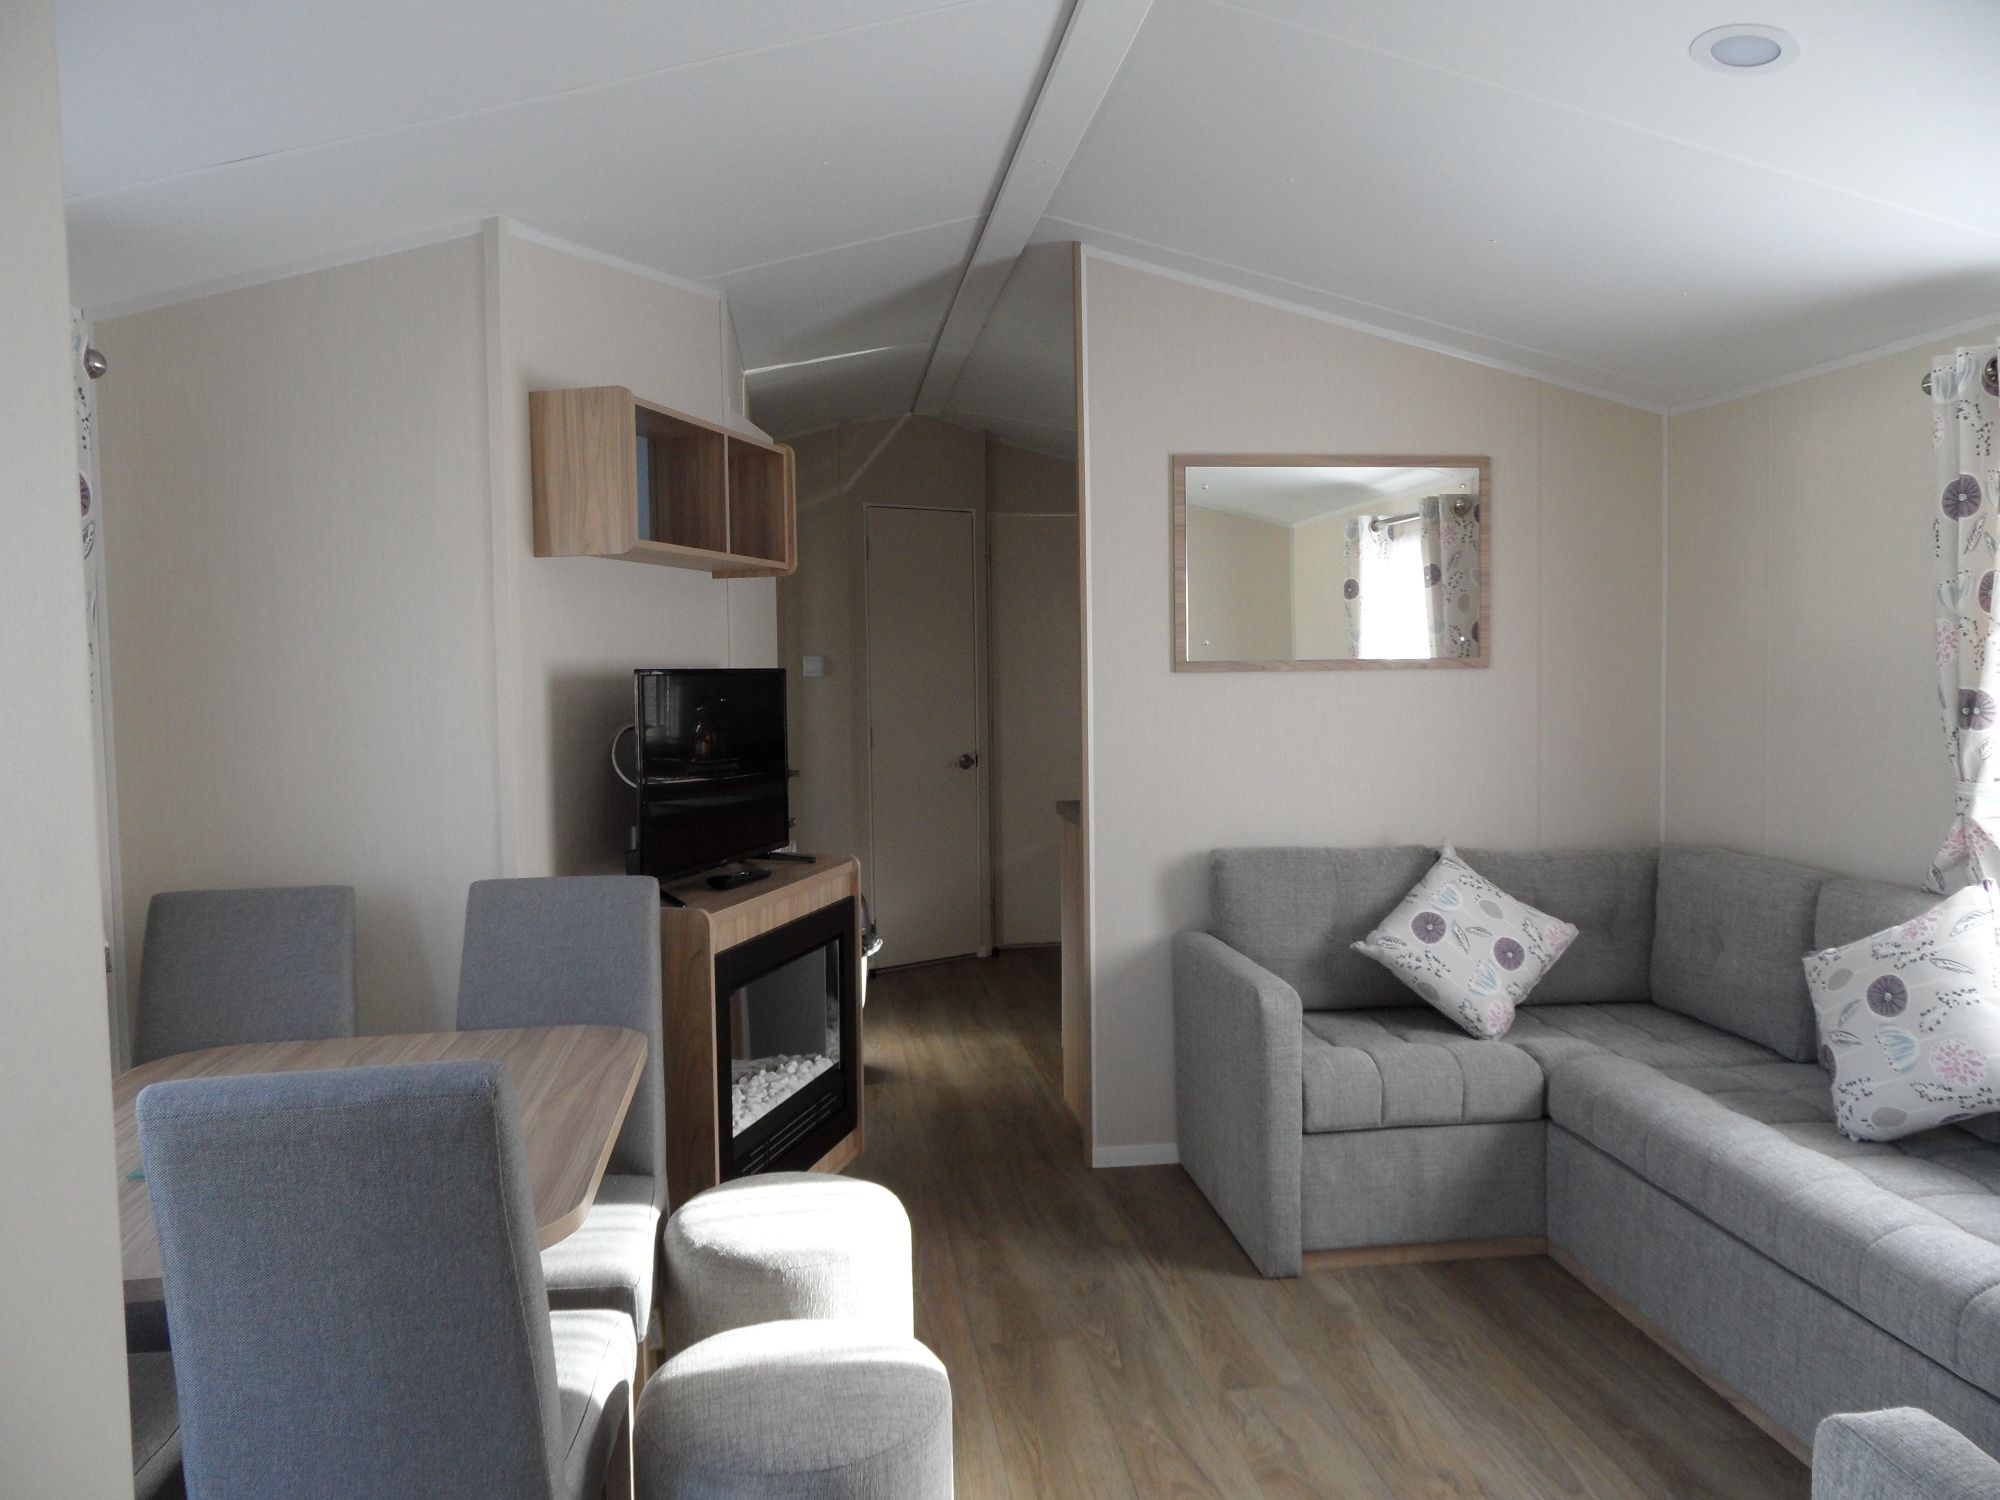 4 bedroom 10 berth Linwood Caravan